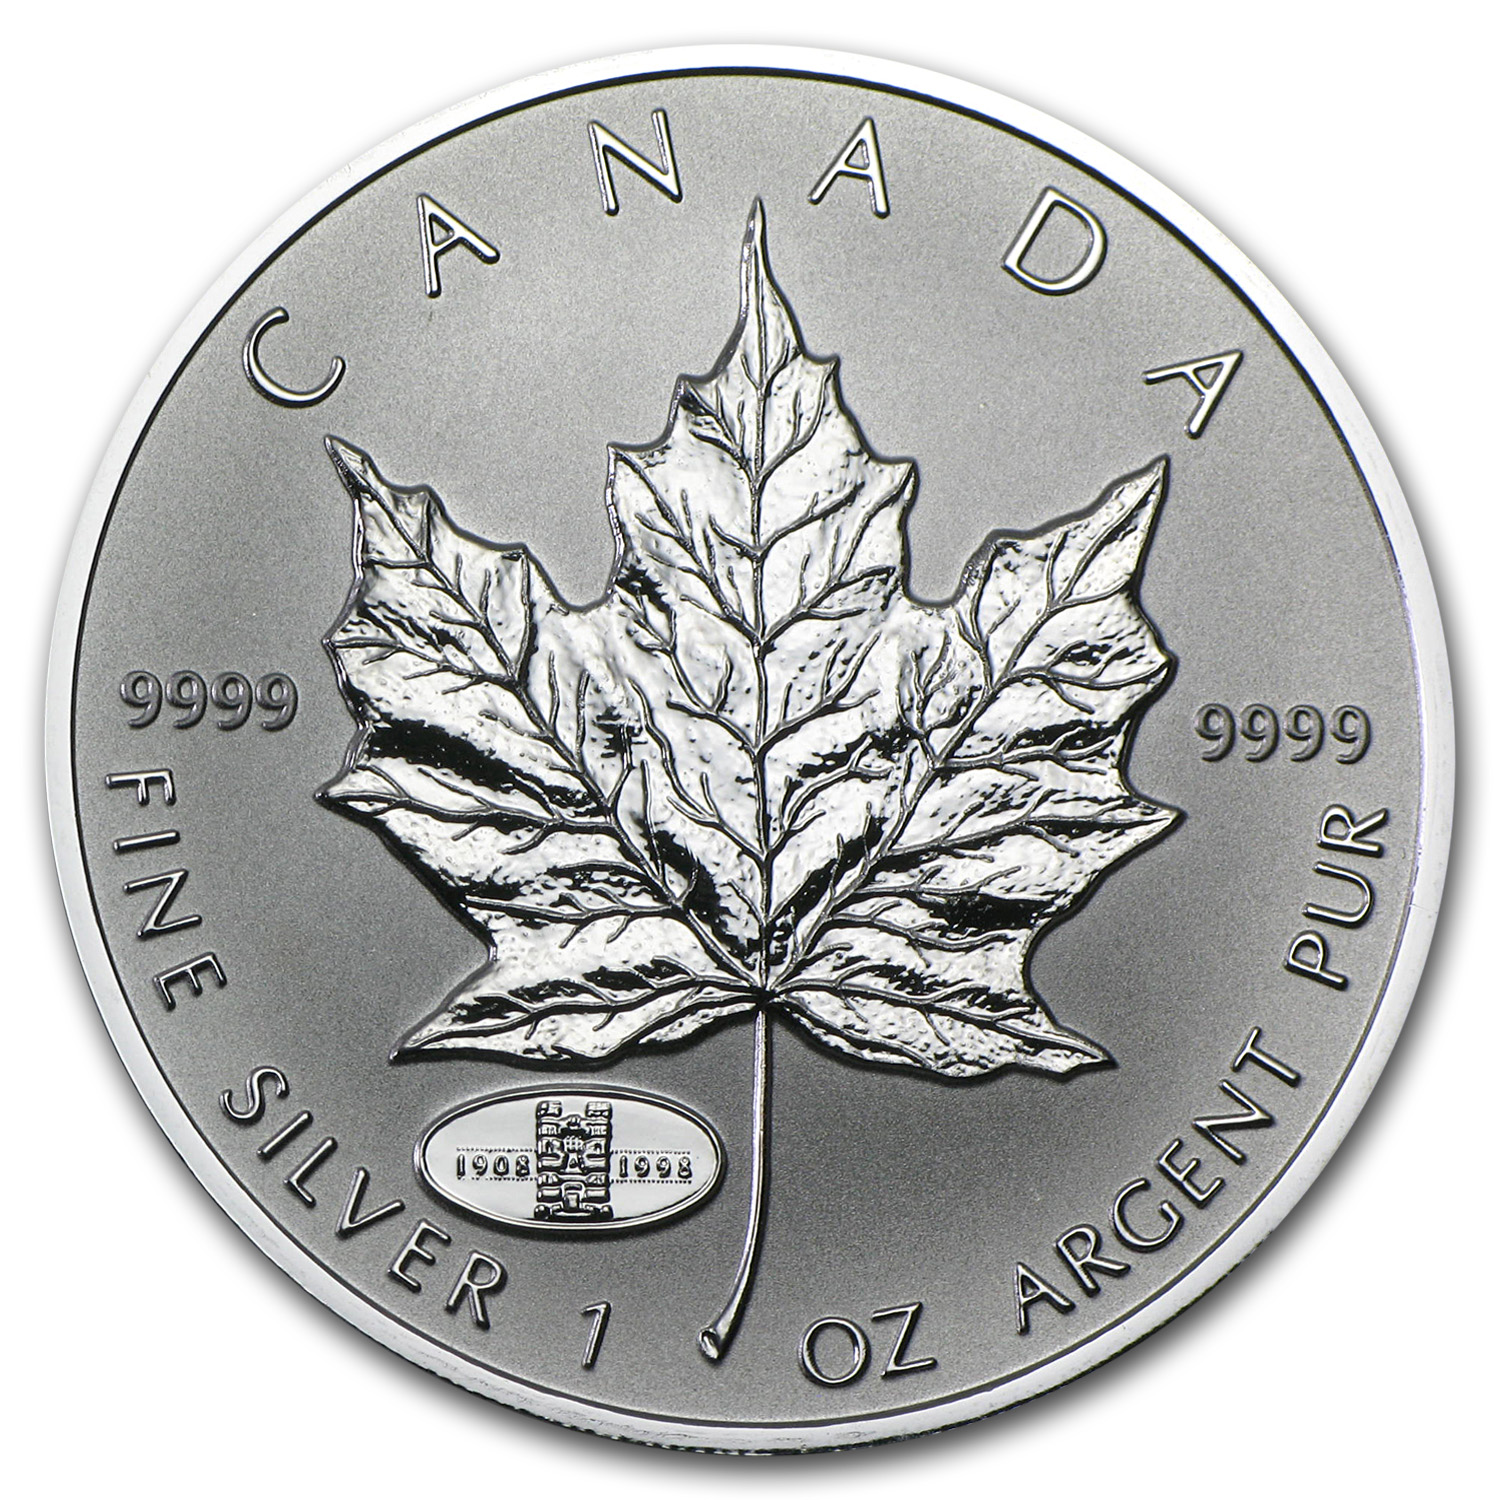 1998 Canada 1 oz Silver Maple Leaf RCM Privy